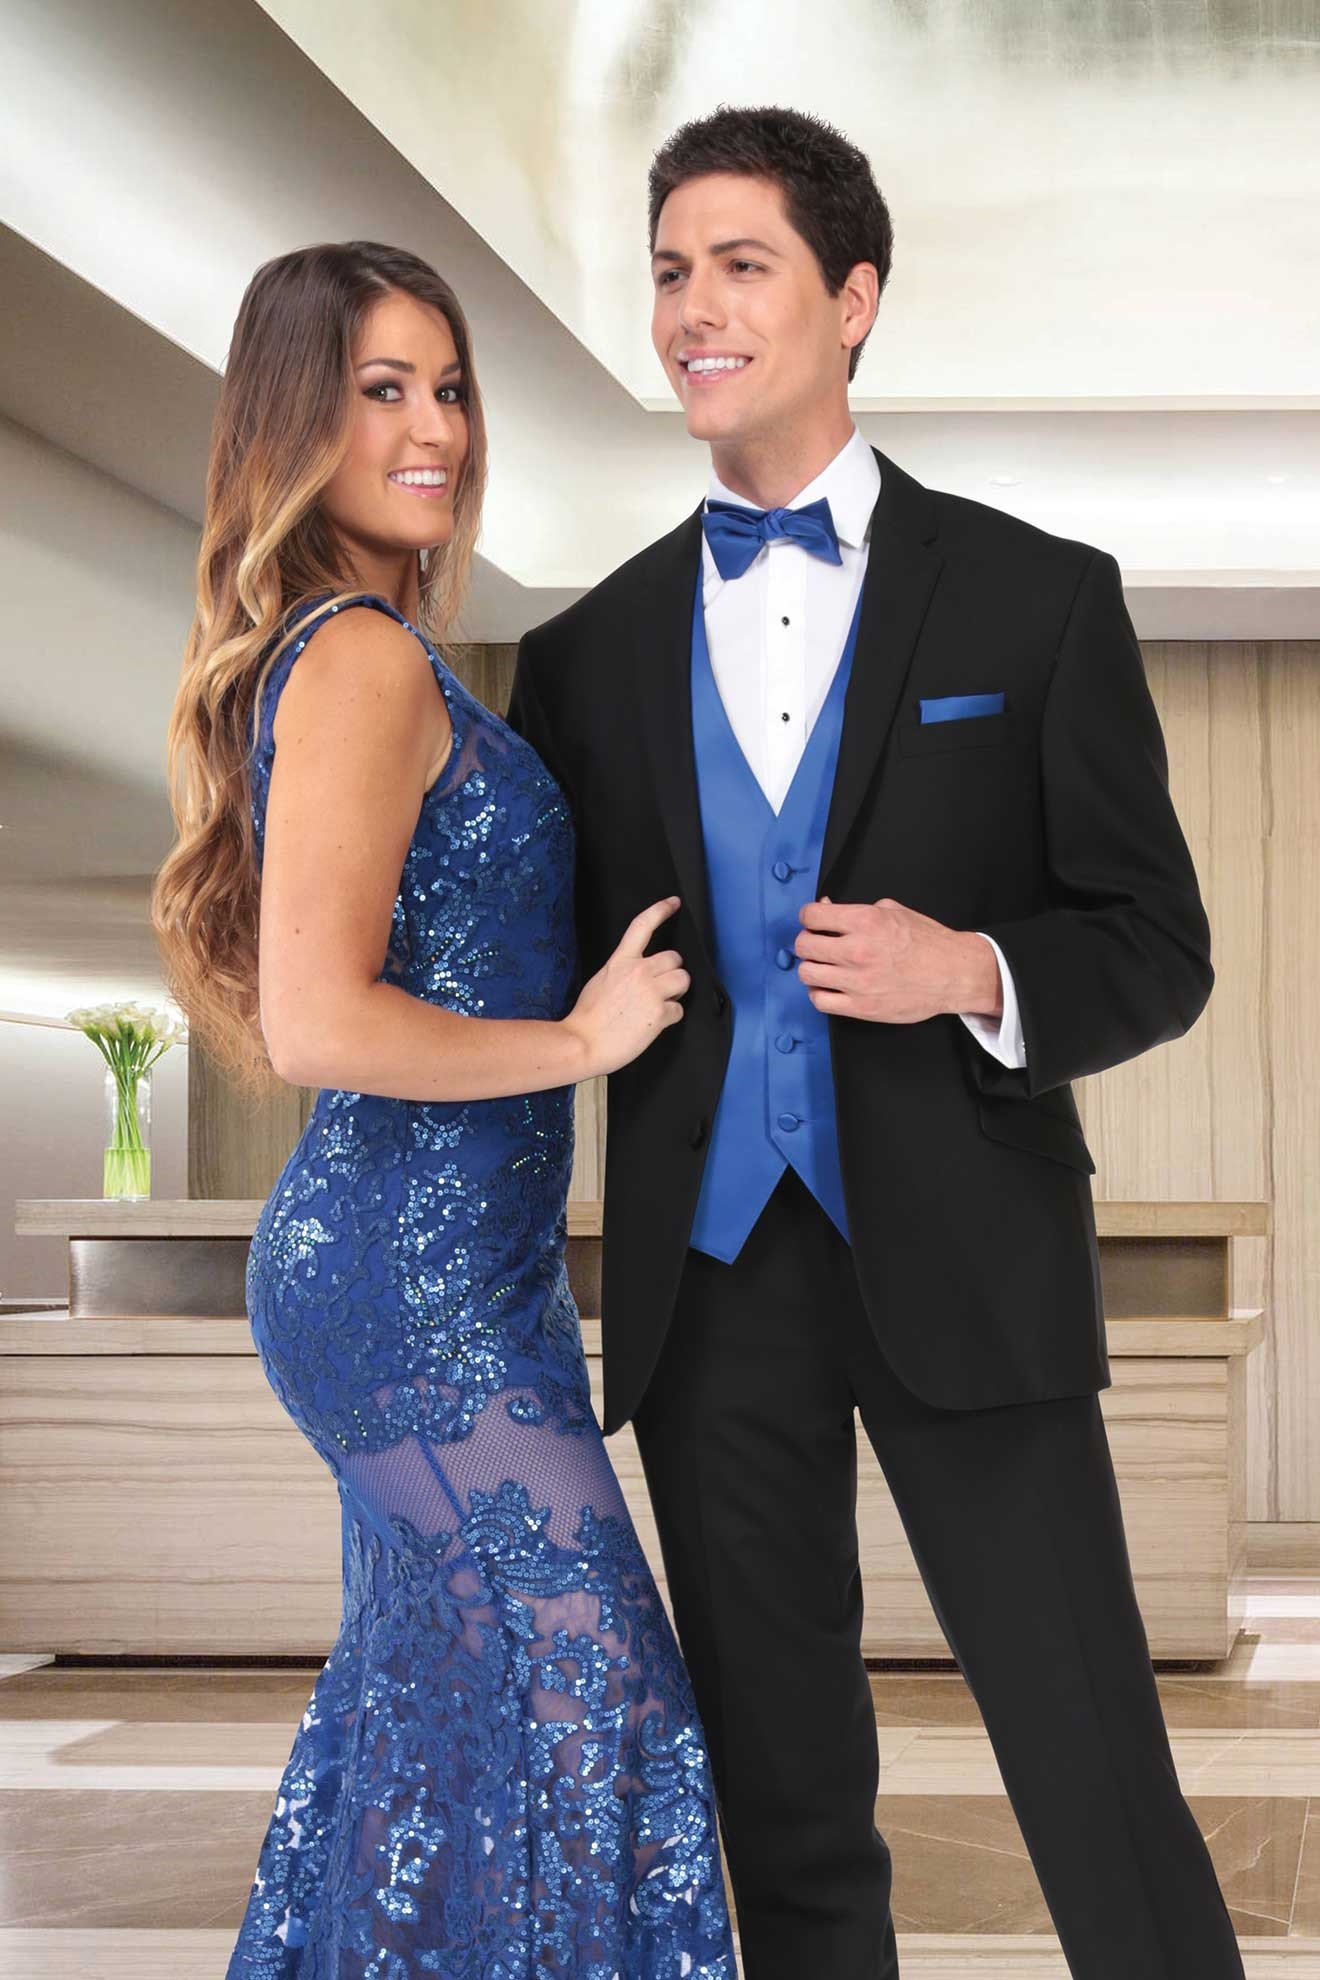 Matching Prom Dresses and Tuxedos – Fashion dresses